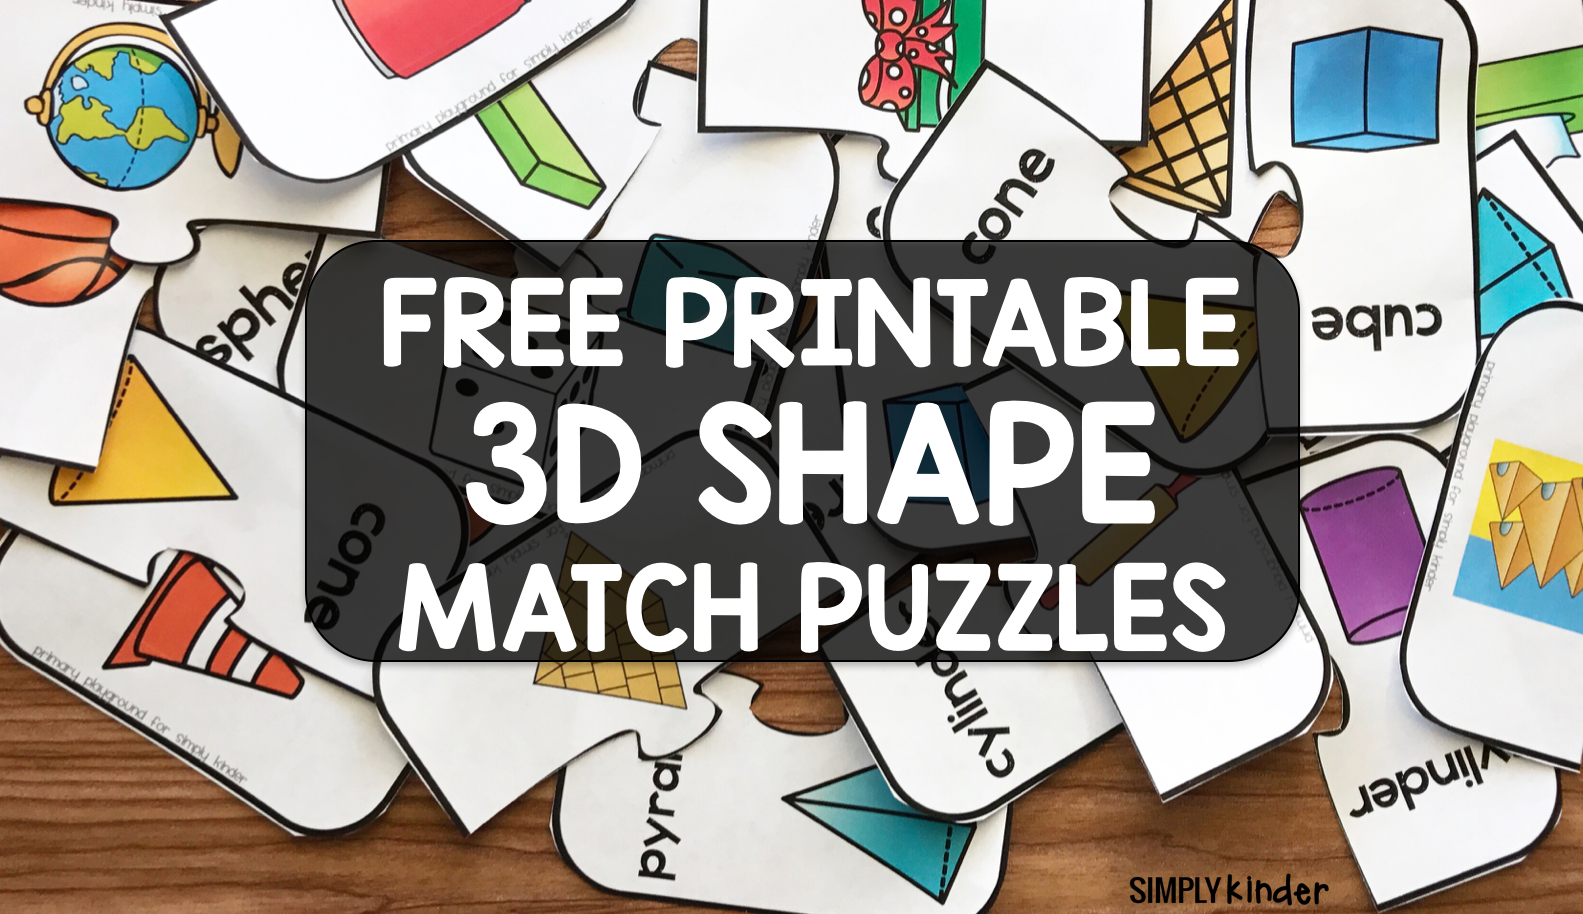 Free Printable 3D Shape Puzzles - Simply Kinder - Printable 3D Puzzle